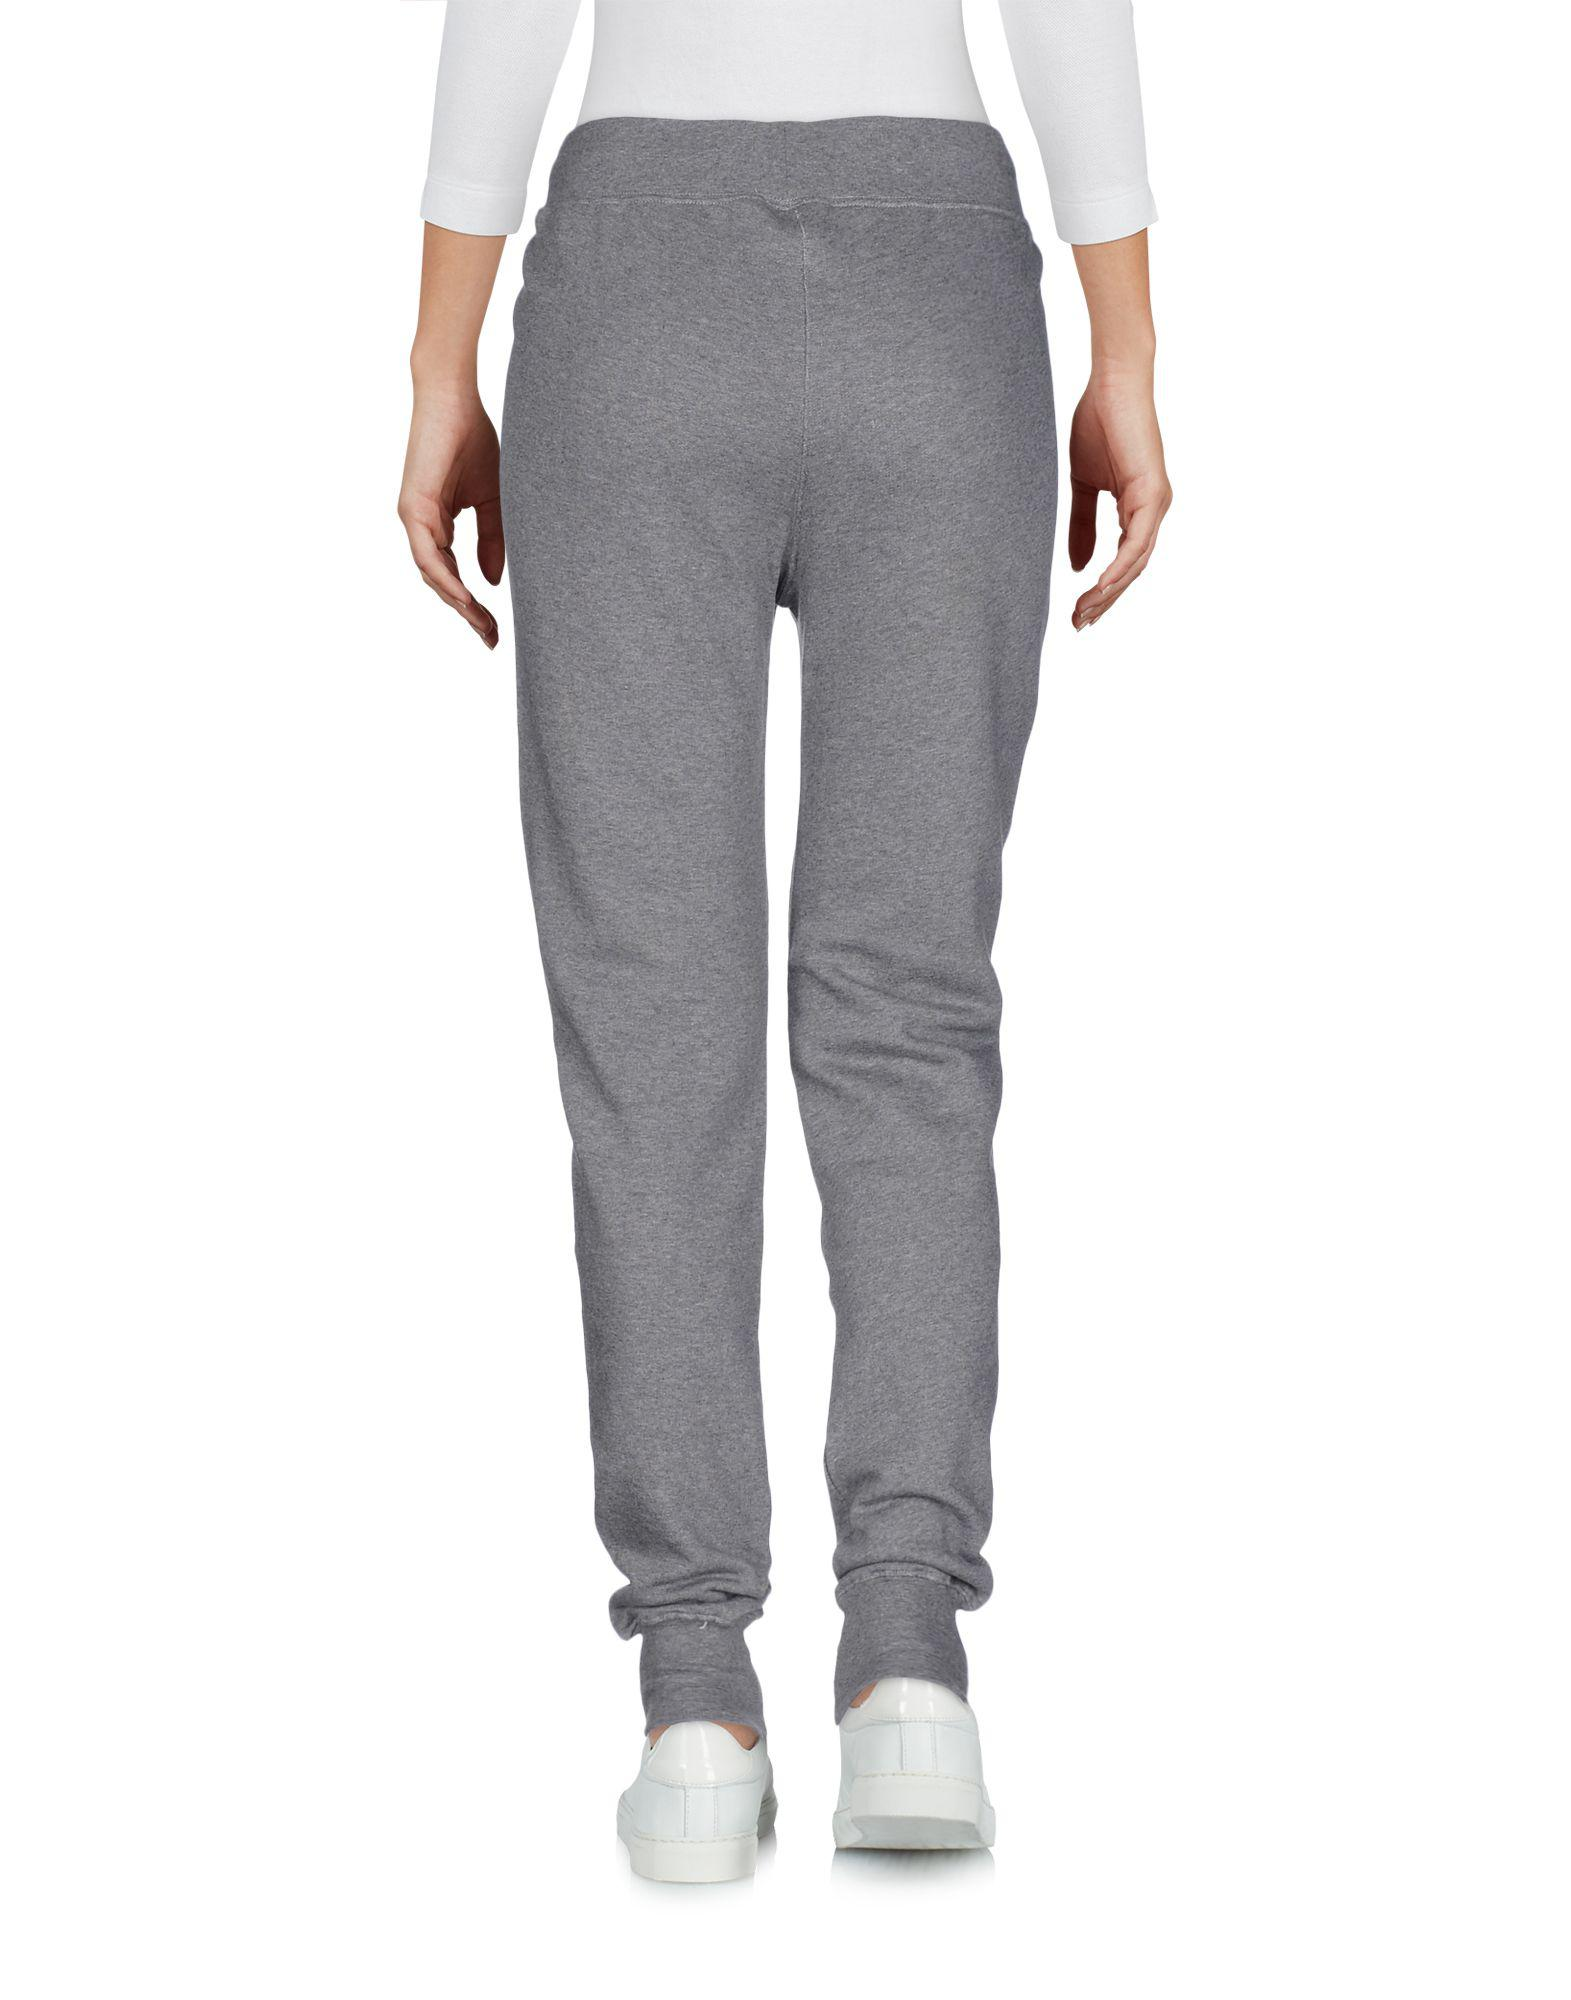 Outlet Pre Order TROUSERS - Casual trousers Nhivuru Sale Reliable rX7zbEJNe